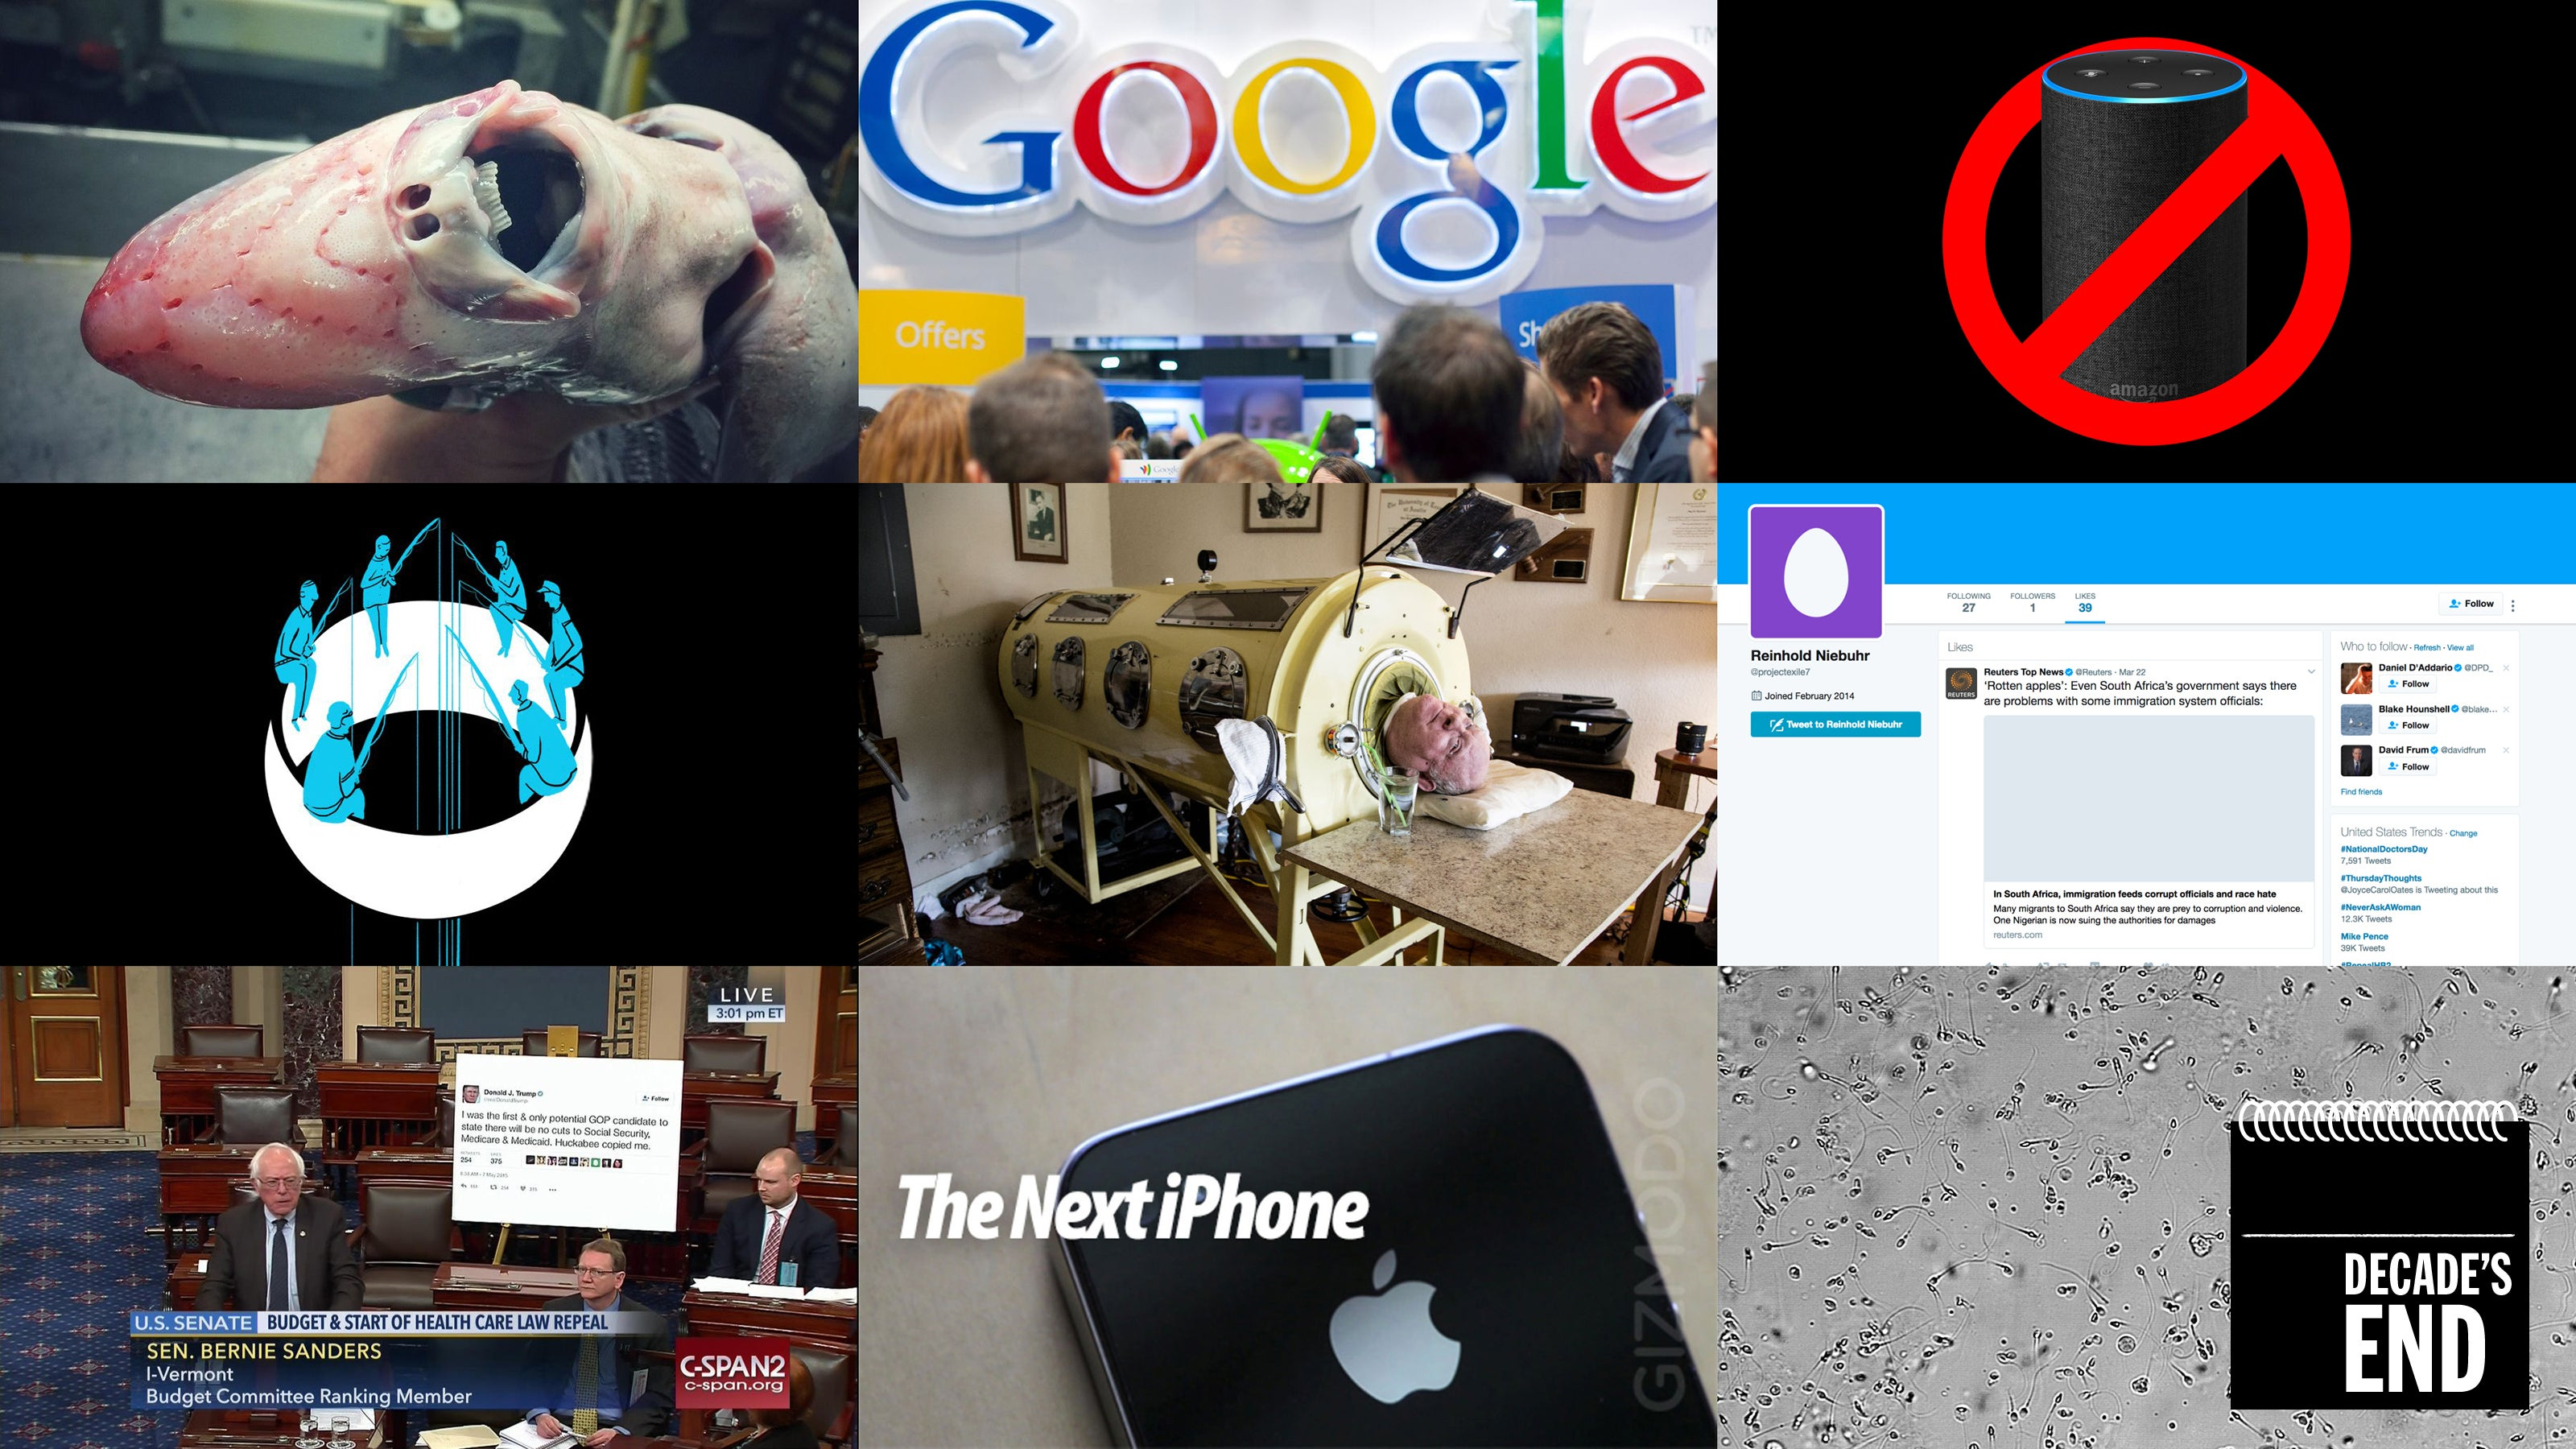 Our Top Posts Of The Decade: A Dubious List For A Meaningless Timeline